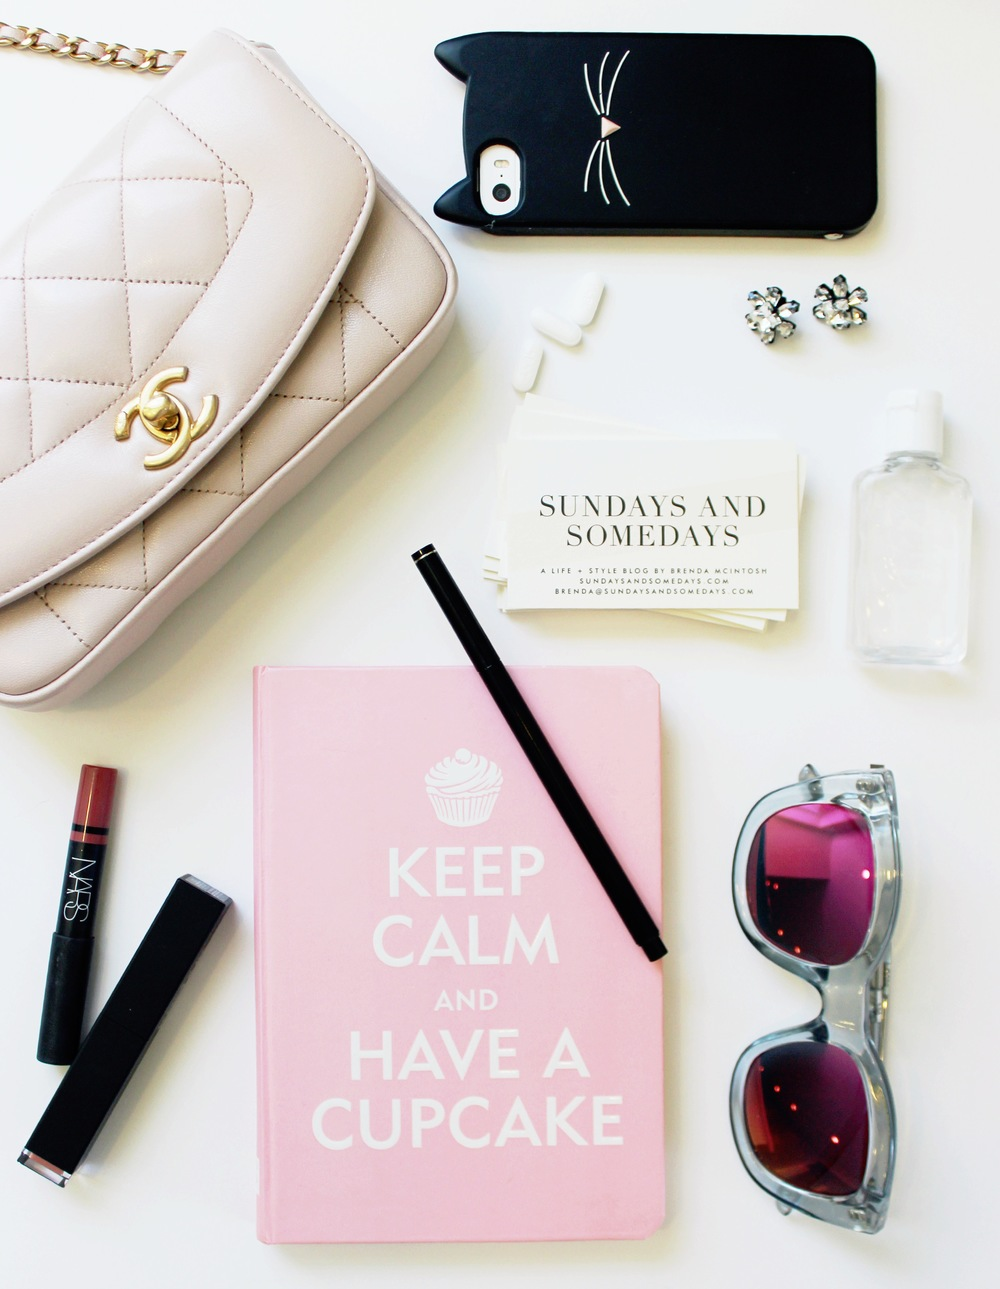 Alt Summit - What's in my bag from Altitude Summit, including Minted business cards, Nars lip color and Le Specs sunglasses | Sundays and Somedays